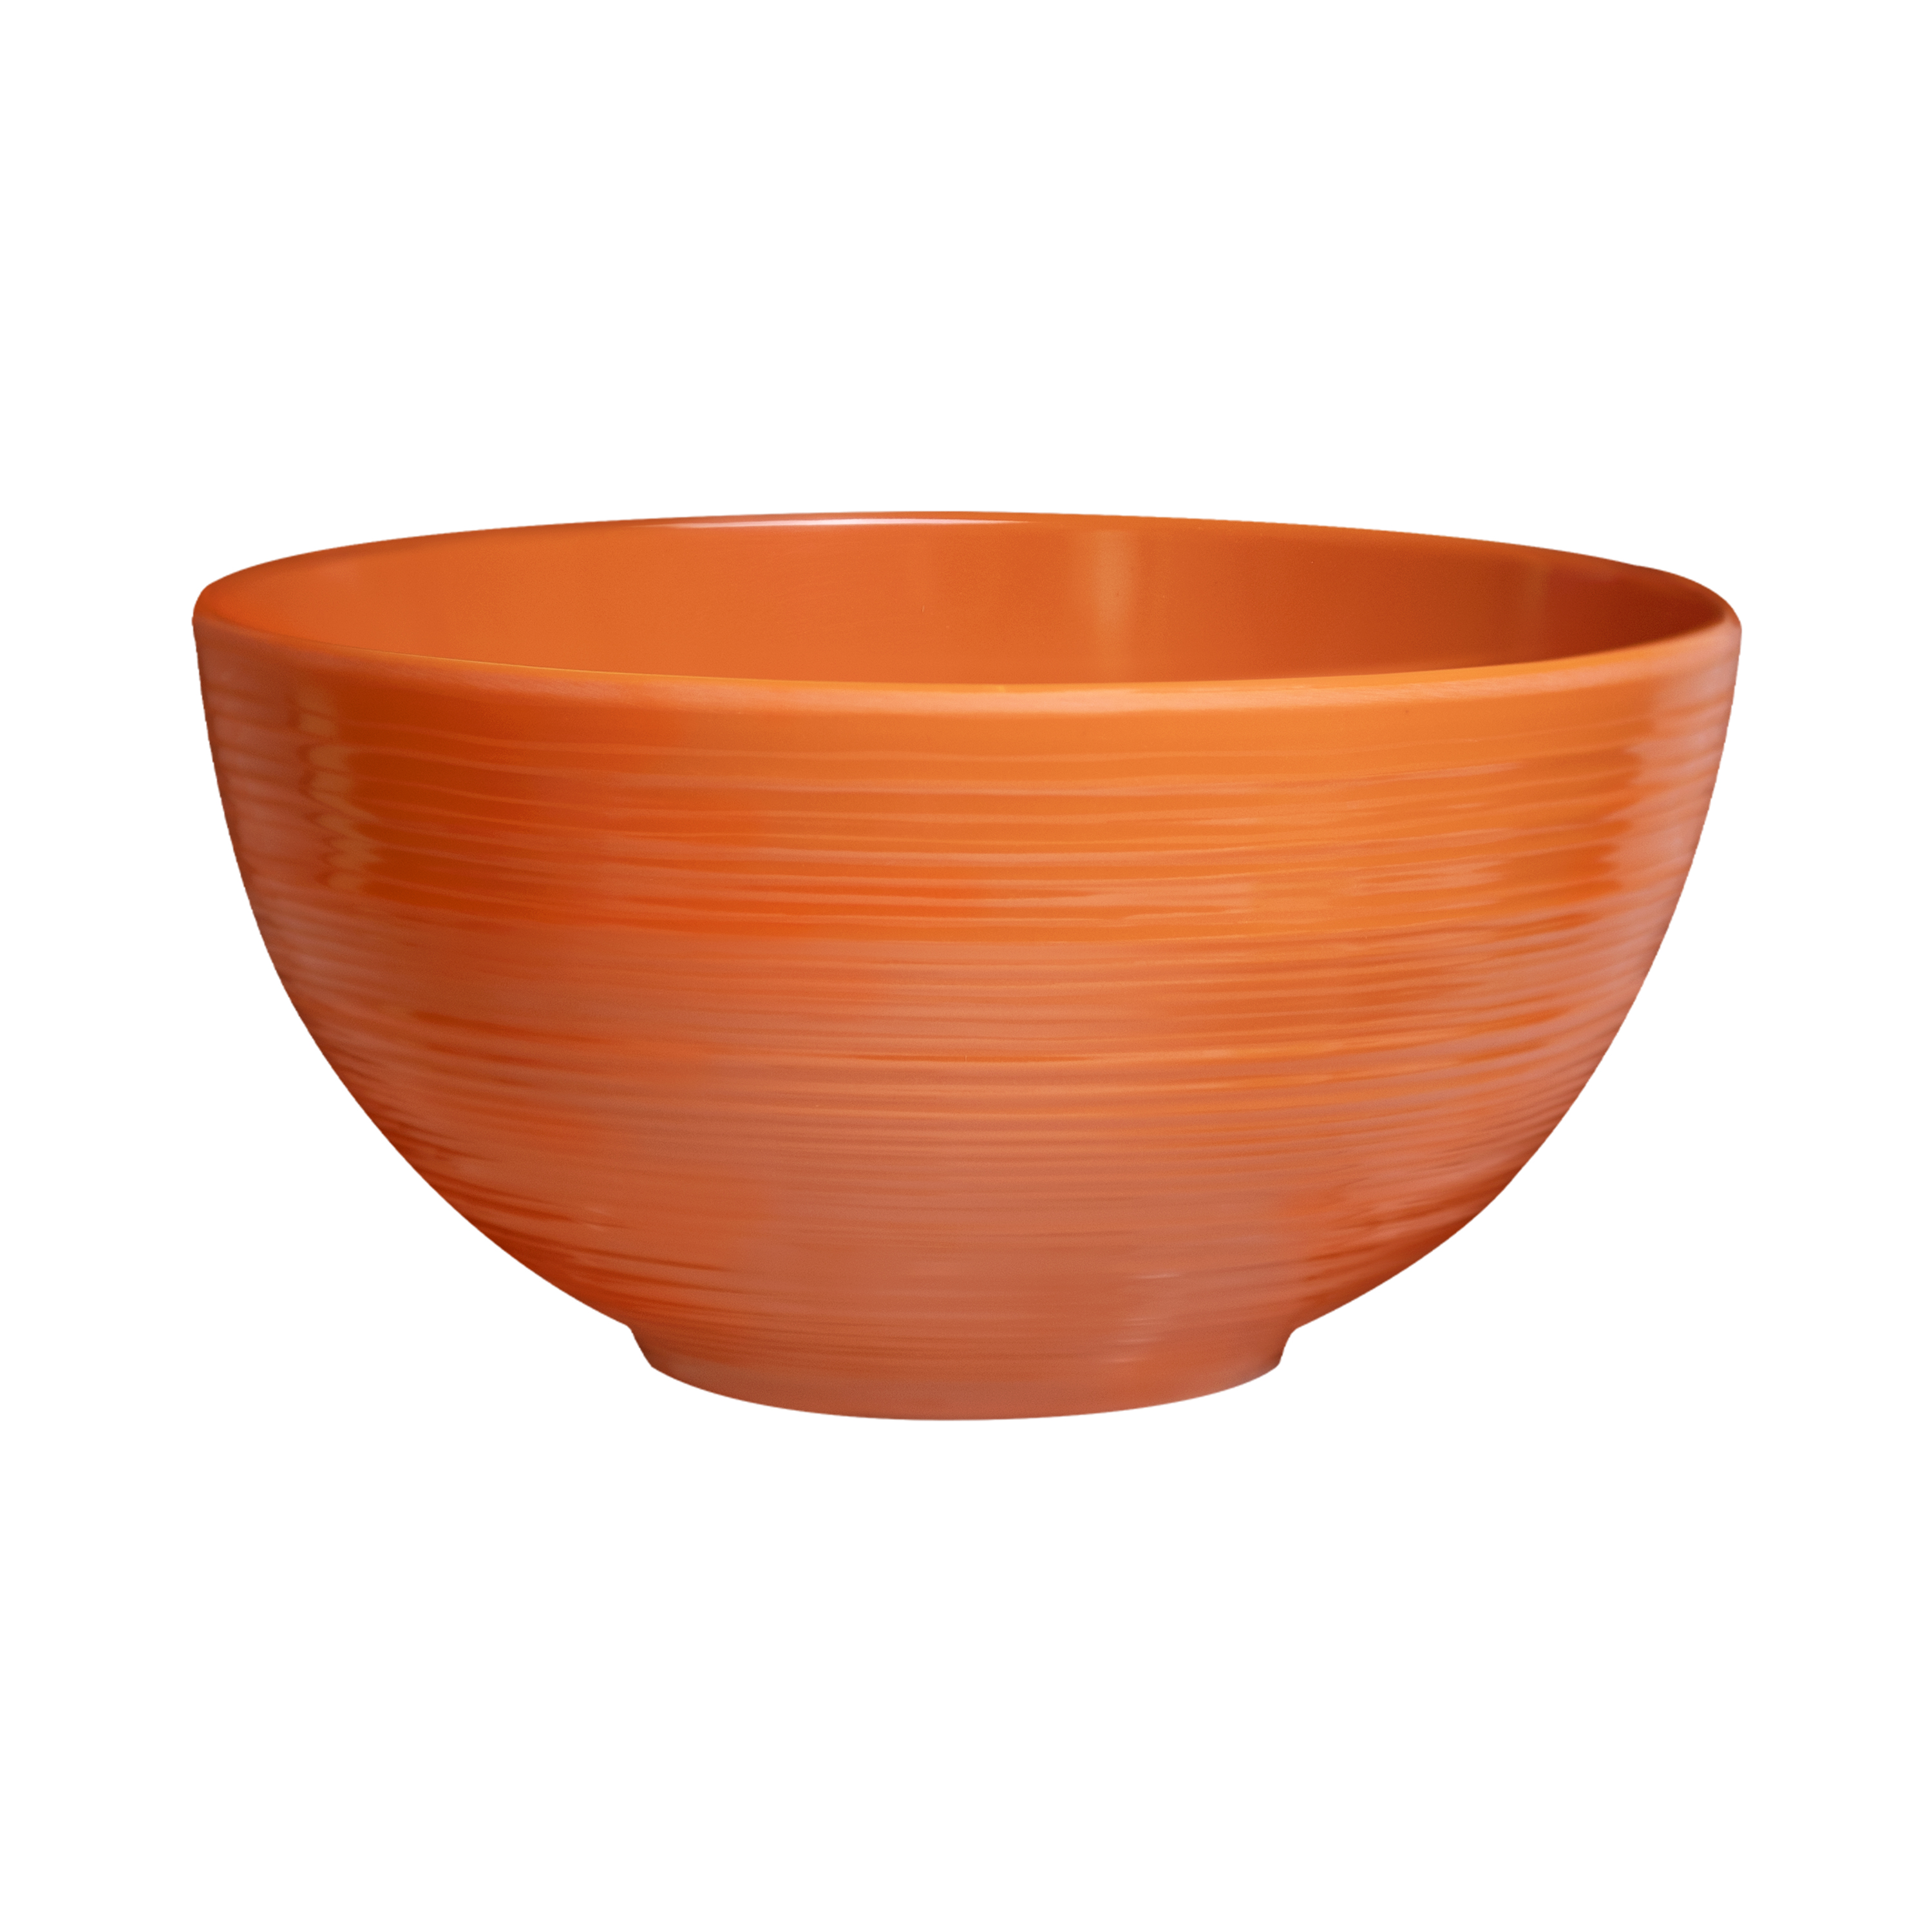 American Conventional Plate & Bowl Sets, Orange, 12-piece set slideshow image 3